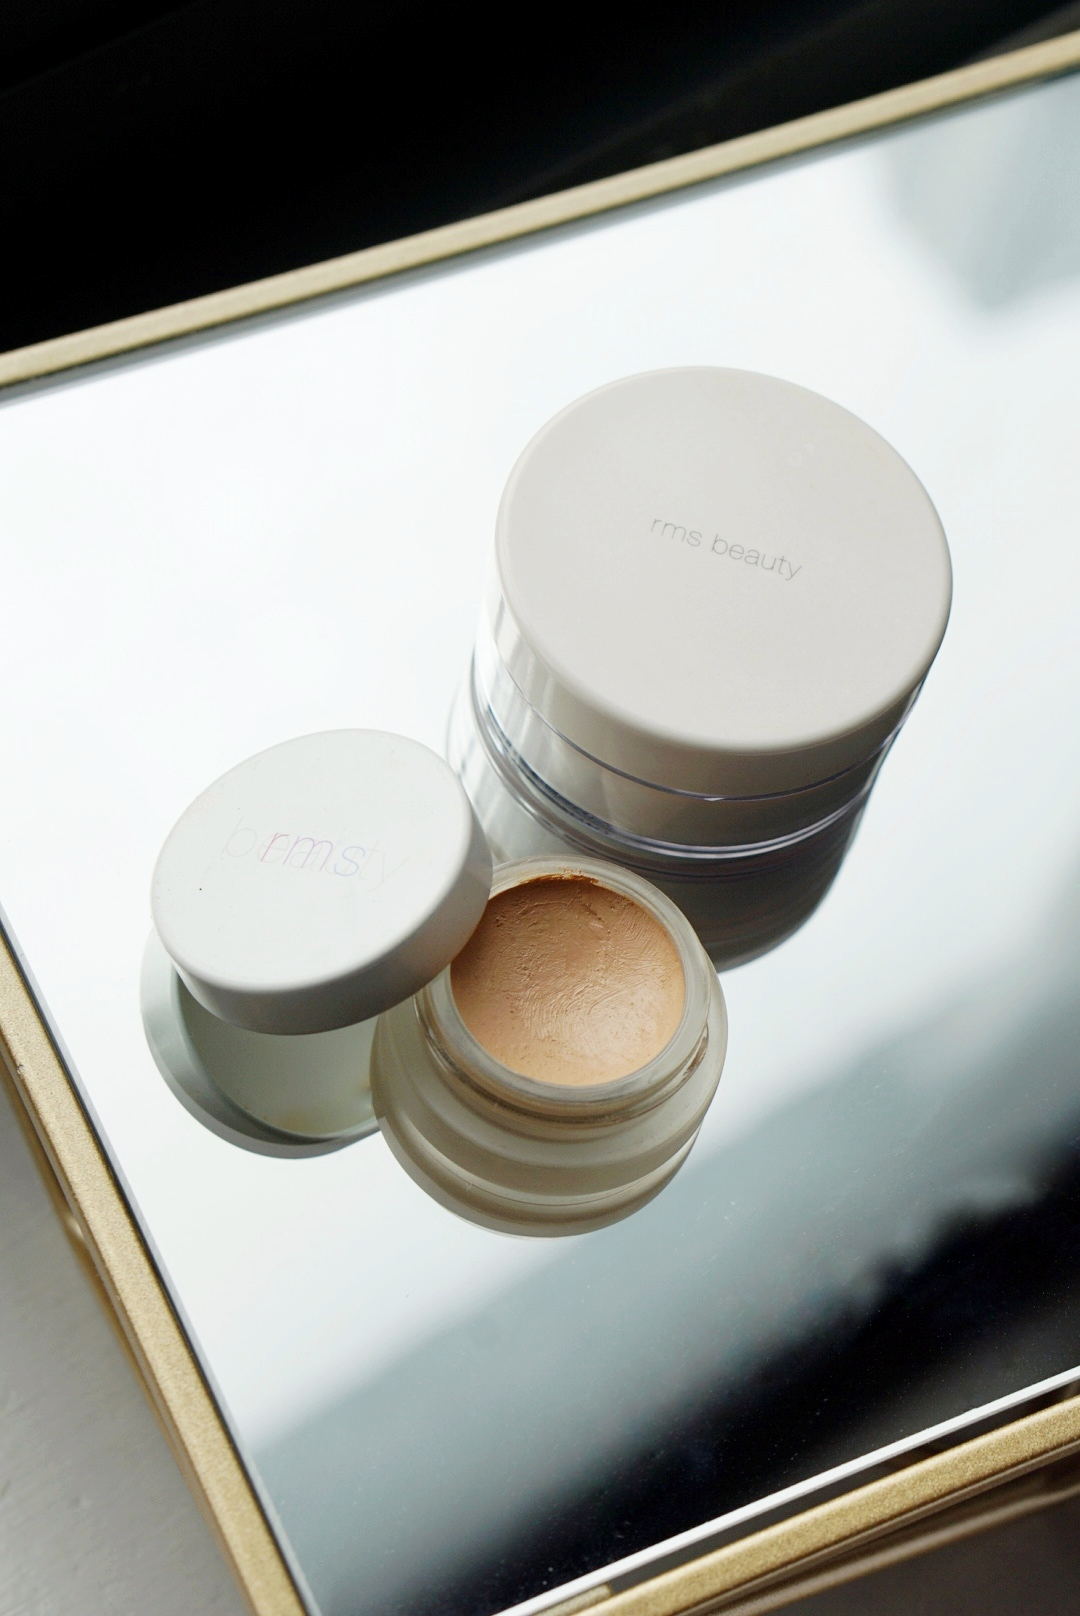 """Un Cover Up by RMS Beauty - RMS Beauty's Un Cover Up works as a foundation as well as a concealer. The product is crafted from raw, organic ingredients and has a moisturizing formula. The color I have is No. 22.What I love: This foundation is one of my favorites out of the 5. It gives me that bouncy, dewy look! It doesn't dry my skin and helps reduce redness on my sensitive cheeks. The container is small and light, so it is very easy to travel with. And I mean even on a daily basis; it's great to have in my bag in case I need touchups before a photo shoot or an event.What I'd like to change: Initially I thought it'd be great if the foundation had SPF for sun protection! But I later learned from Laura Saur, Director of Social Media at RMS Beauty, that """"… you will not find any of our (RMS Beauty) products to include unnatural SPF ingredients/additives as that is what diminishes it from being a natural and clean beauty product. Most makeup products that have SPF included contain synthetic ingredients, which are not clean."""""""